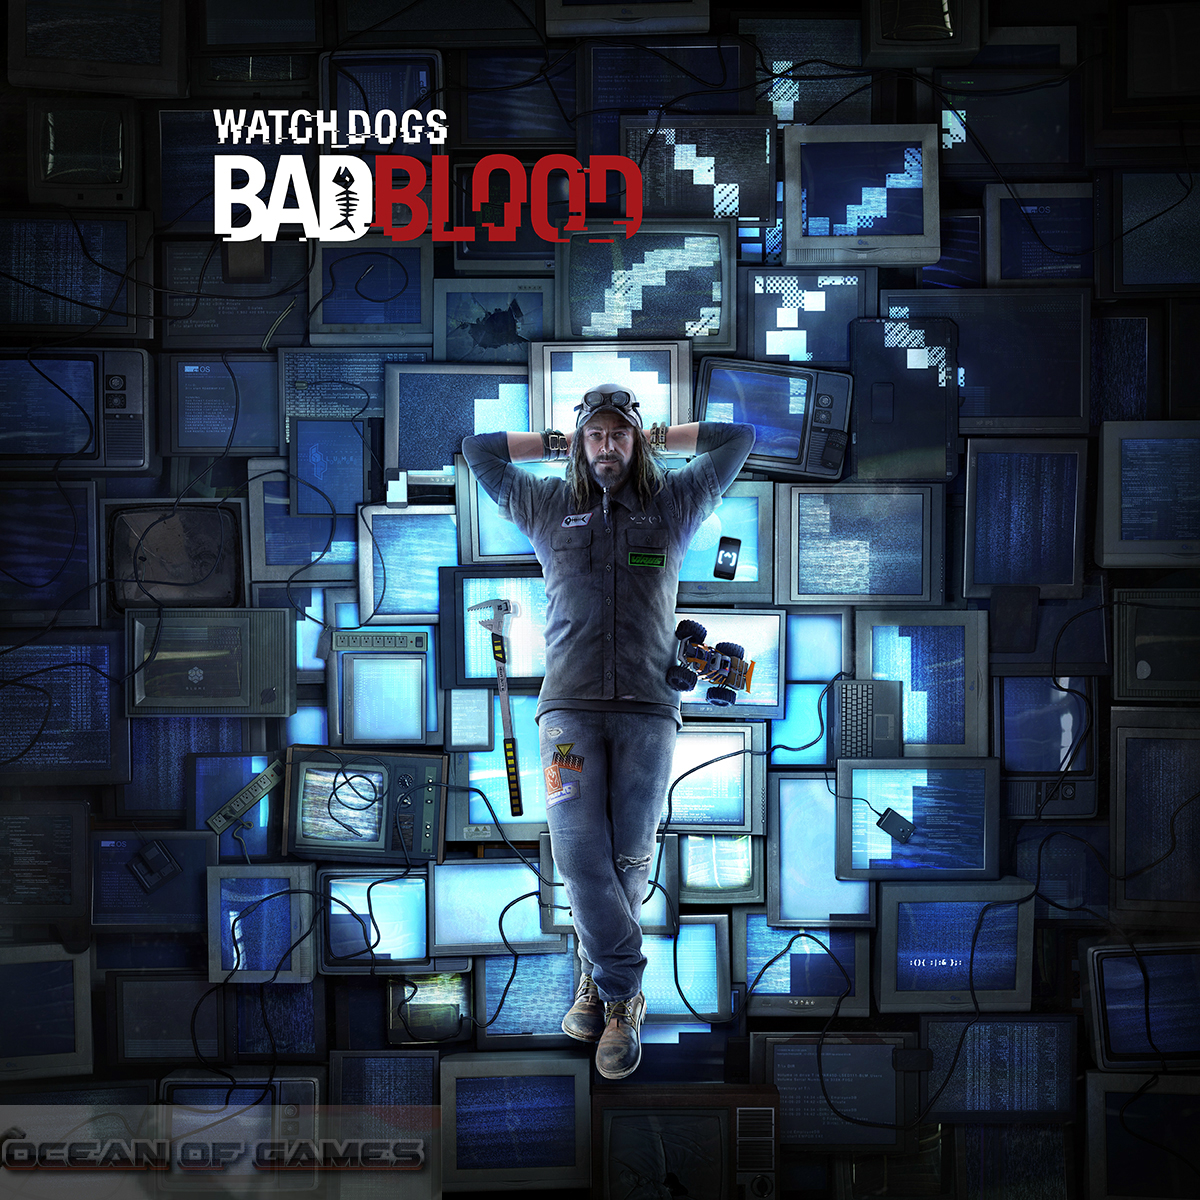 Скачать watch dogs: bad blood торрент бесплатно на компьютер.